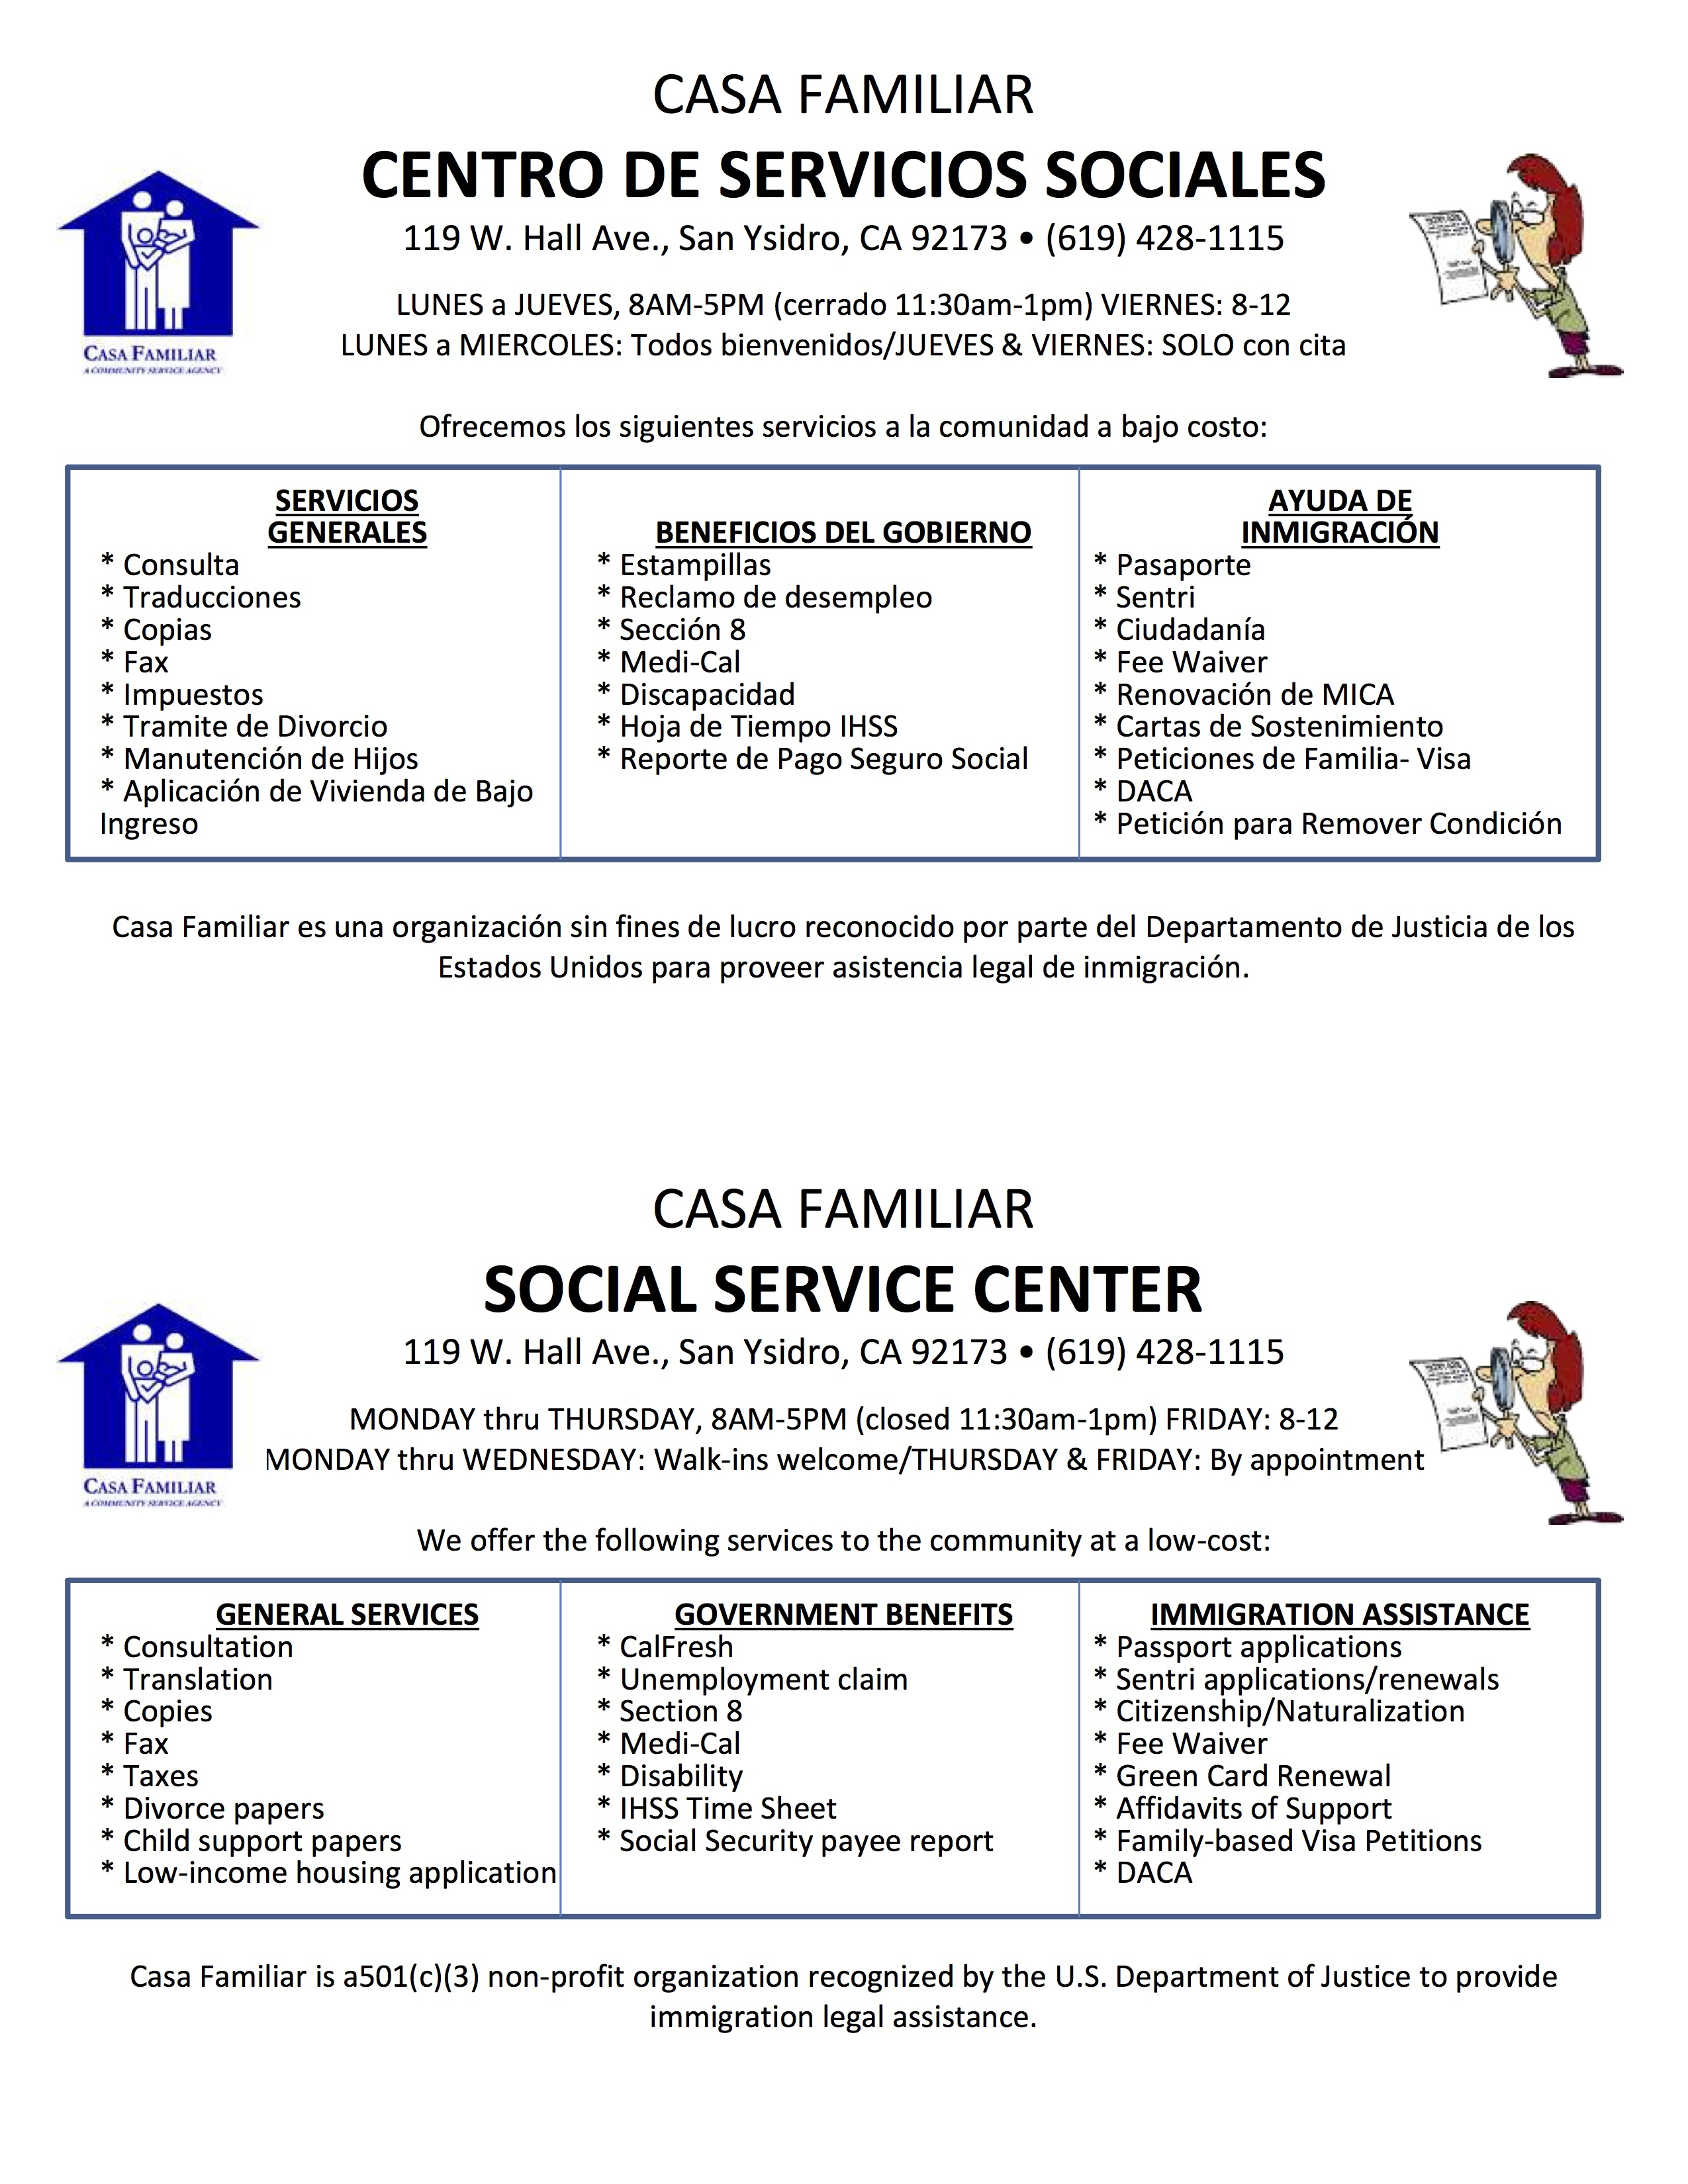 SOCIAL-SERVICES-CENTER-flyer-Bilingual Job Application Form For Big W on part time, blank generic, free generic,